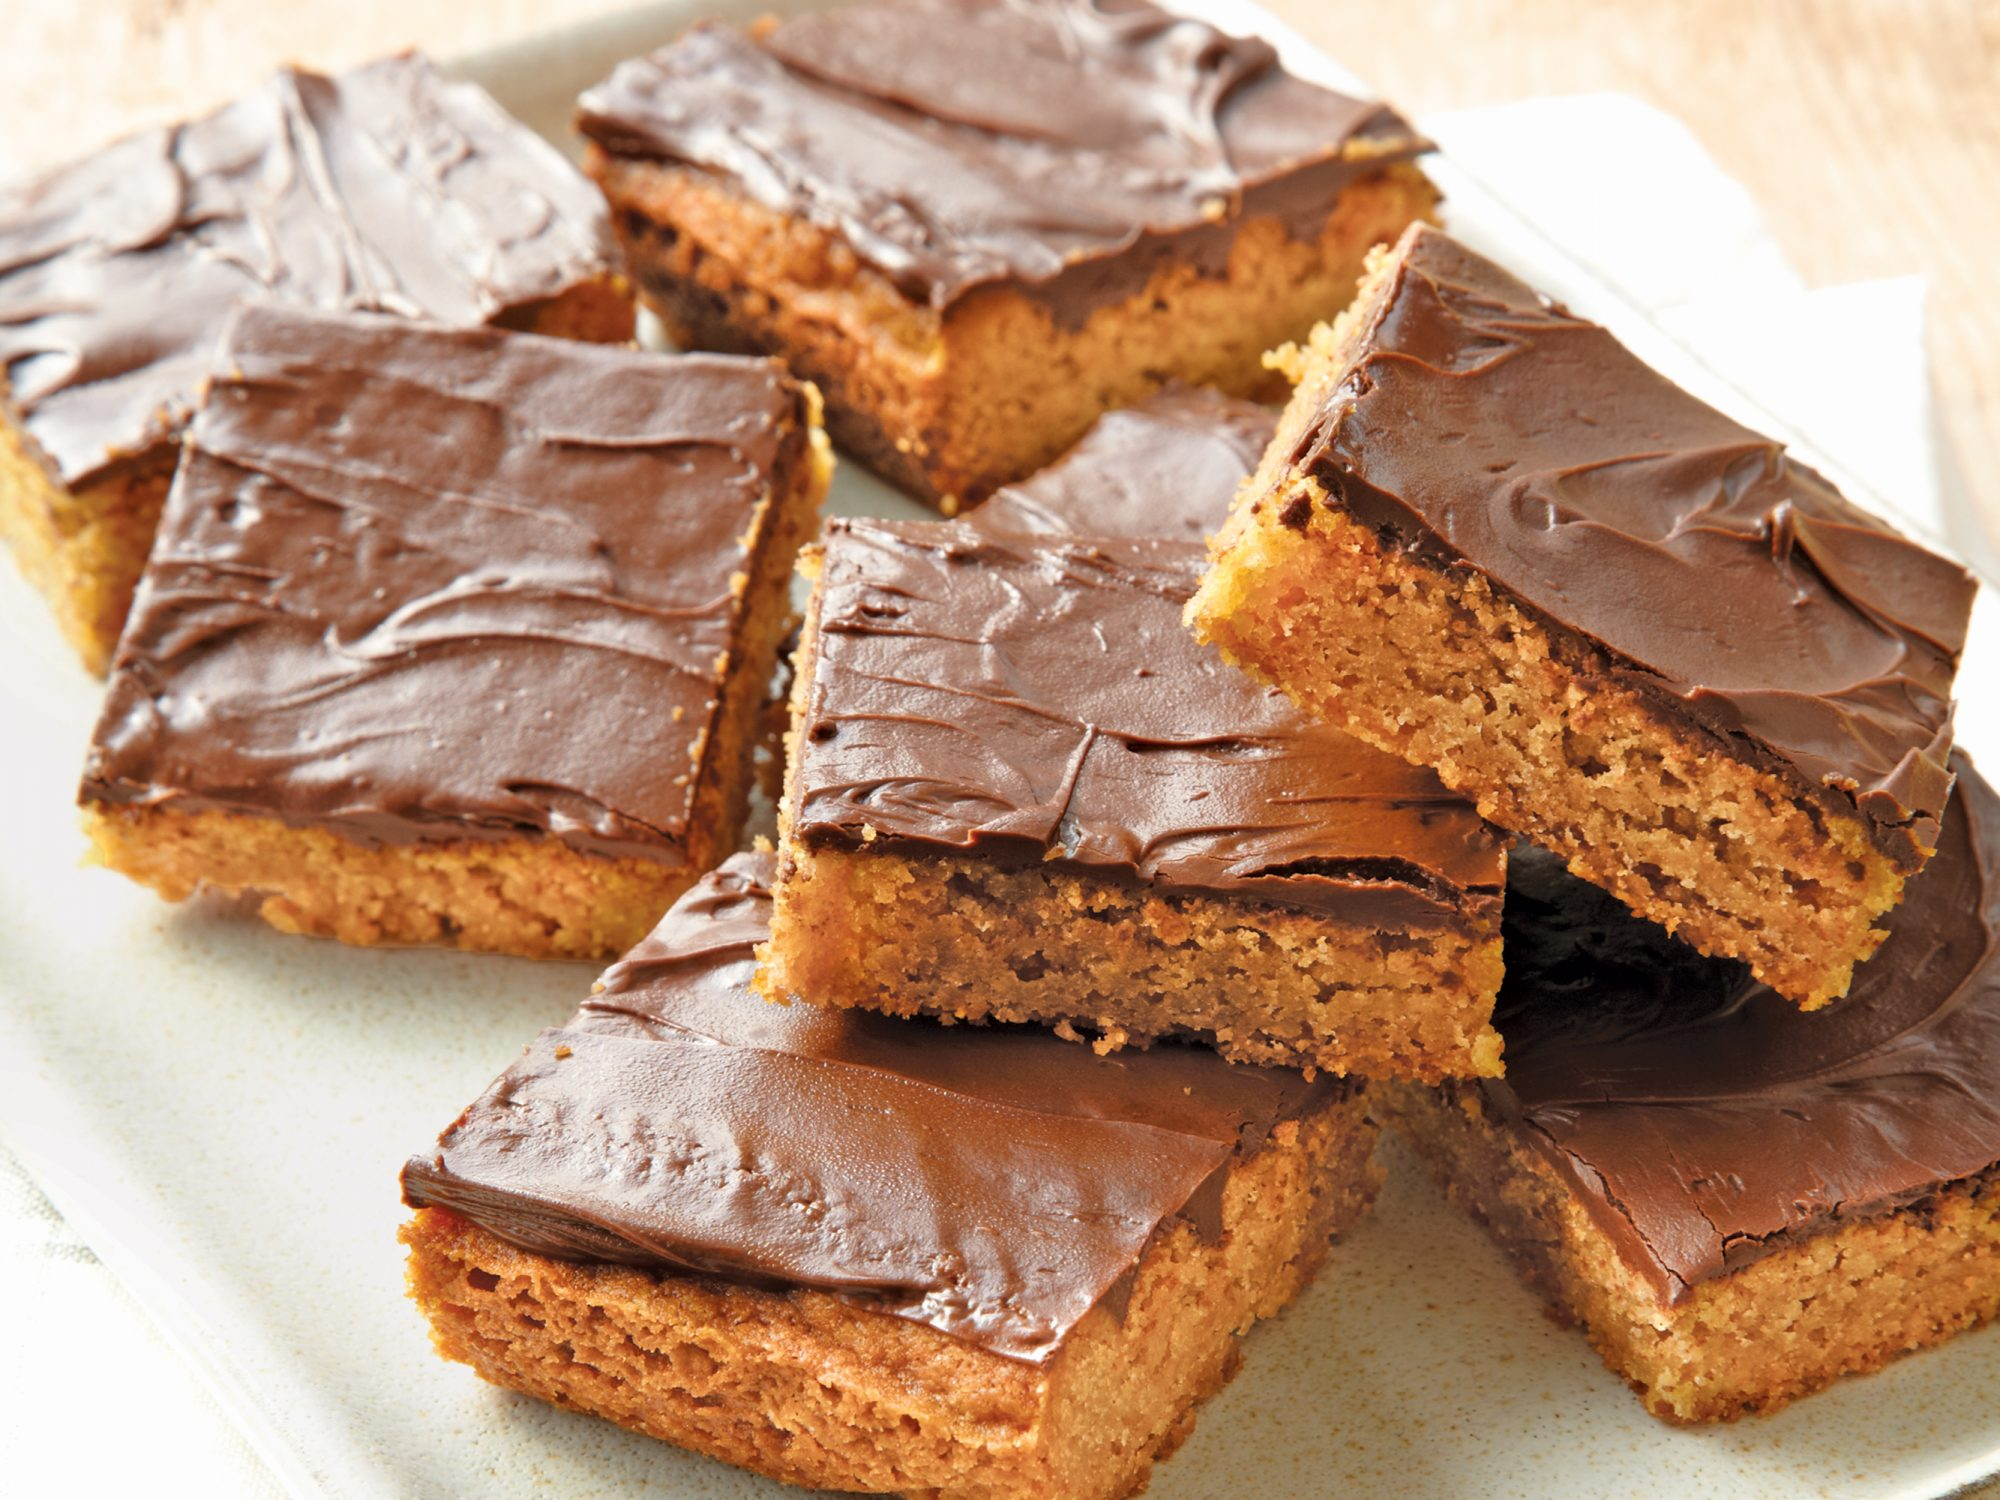 Chocolate-Peanut Butter Bars